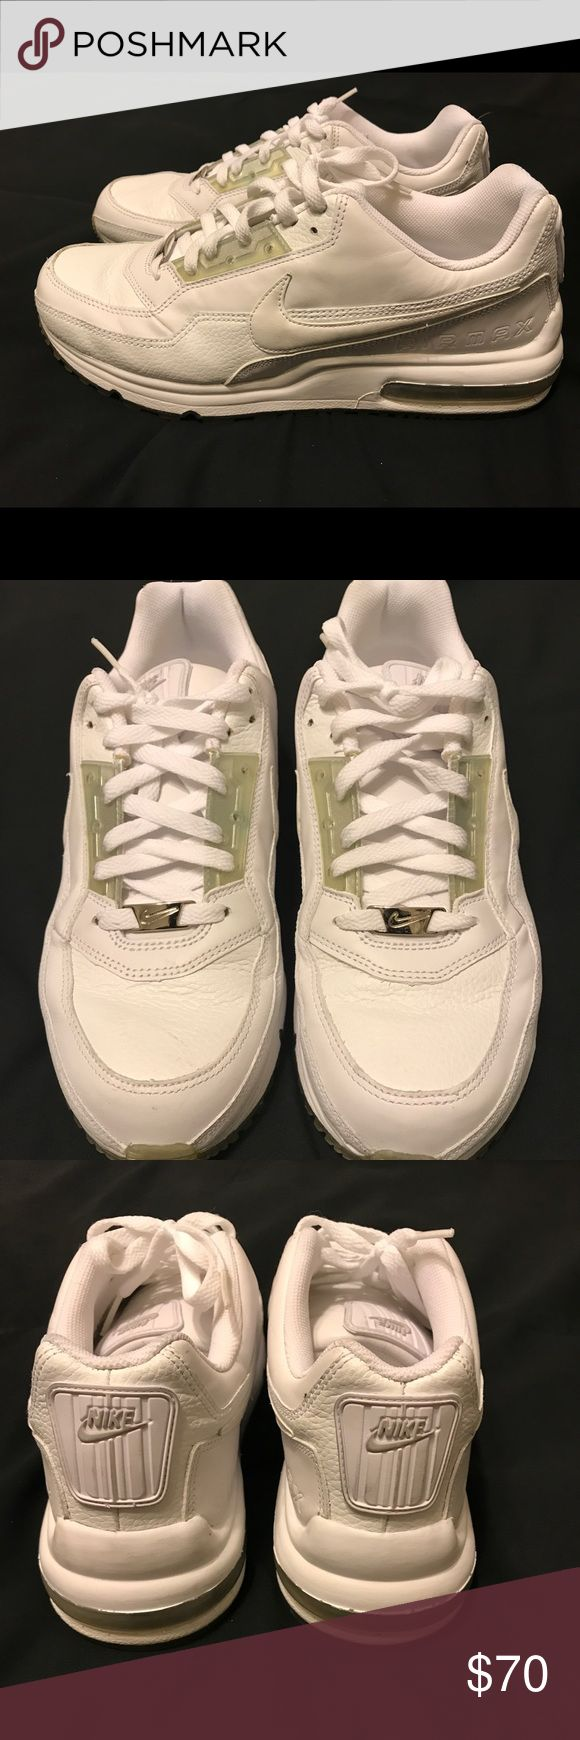 Air Max Wright running shoes Air Max Wright running shoes all white. Very gently worn. Almost like new. Size 11 Nike Shoes Sneakers